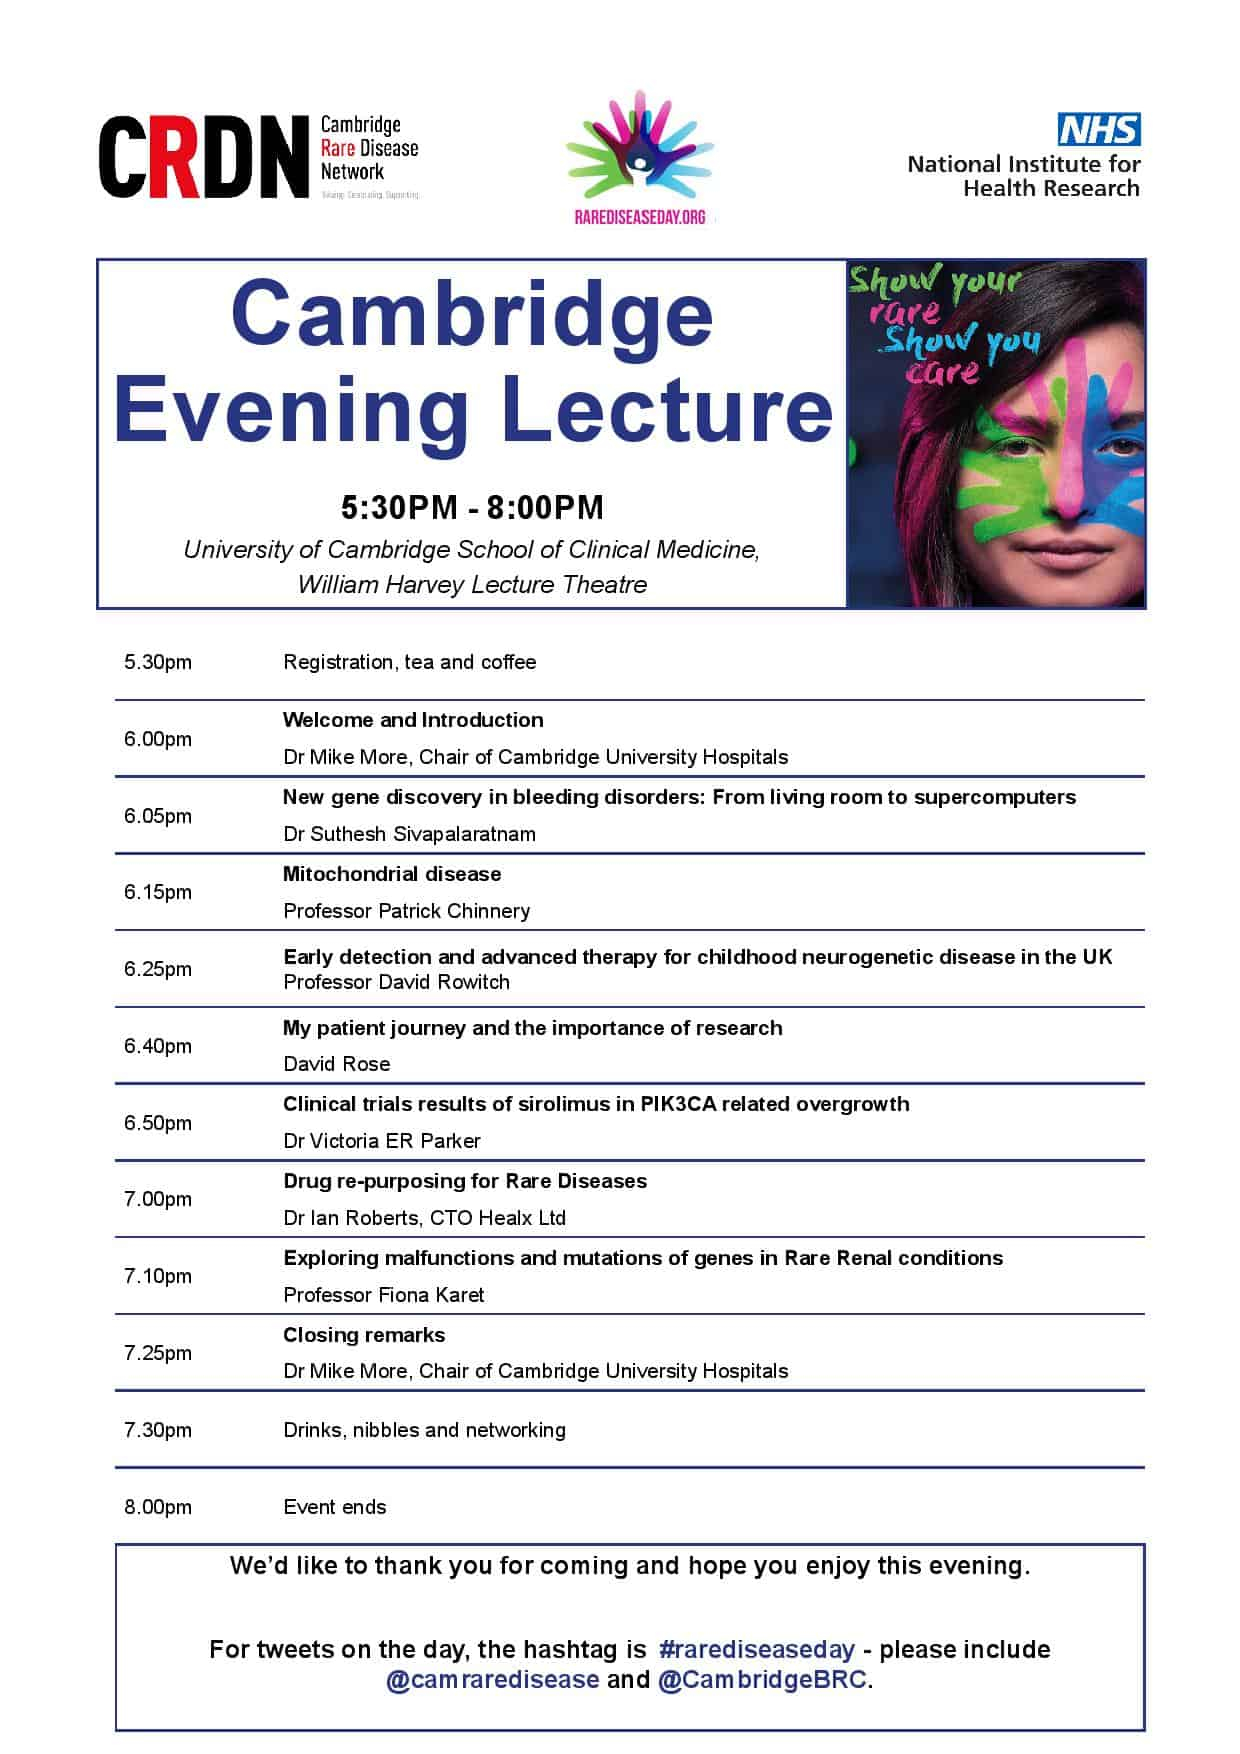 Cambridge Rare Disease Network - Rare Disease Day 2018 - CRDN/NIHR lecture event 1